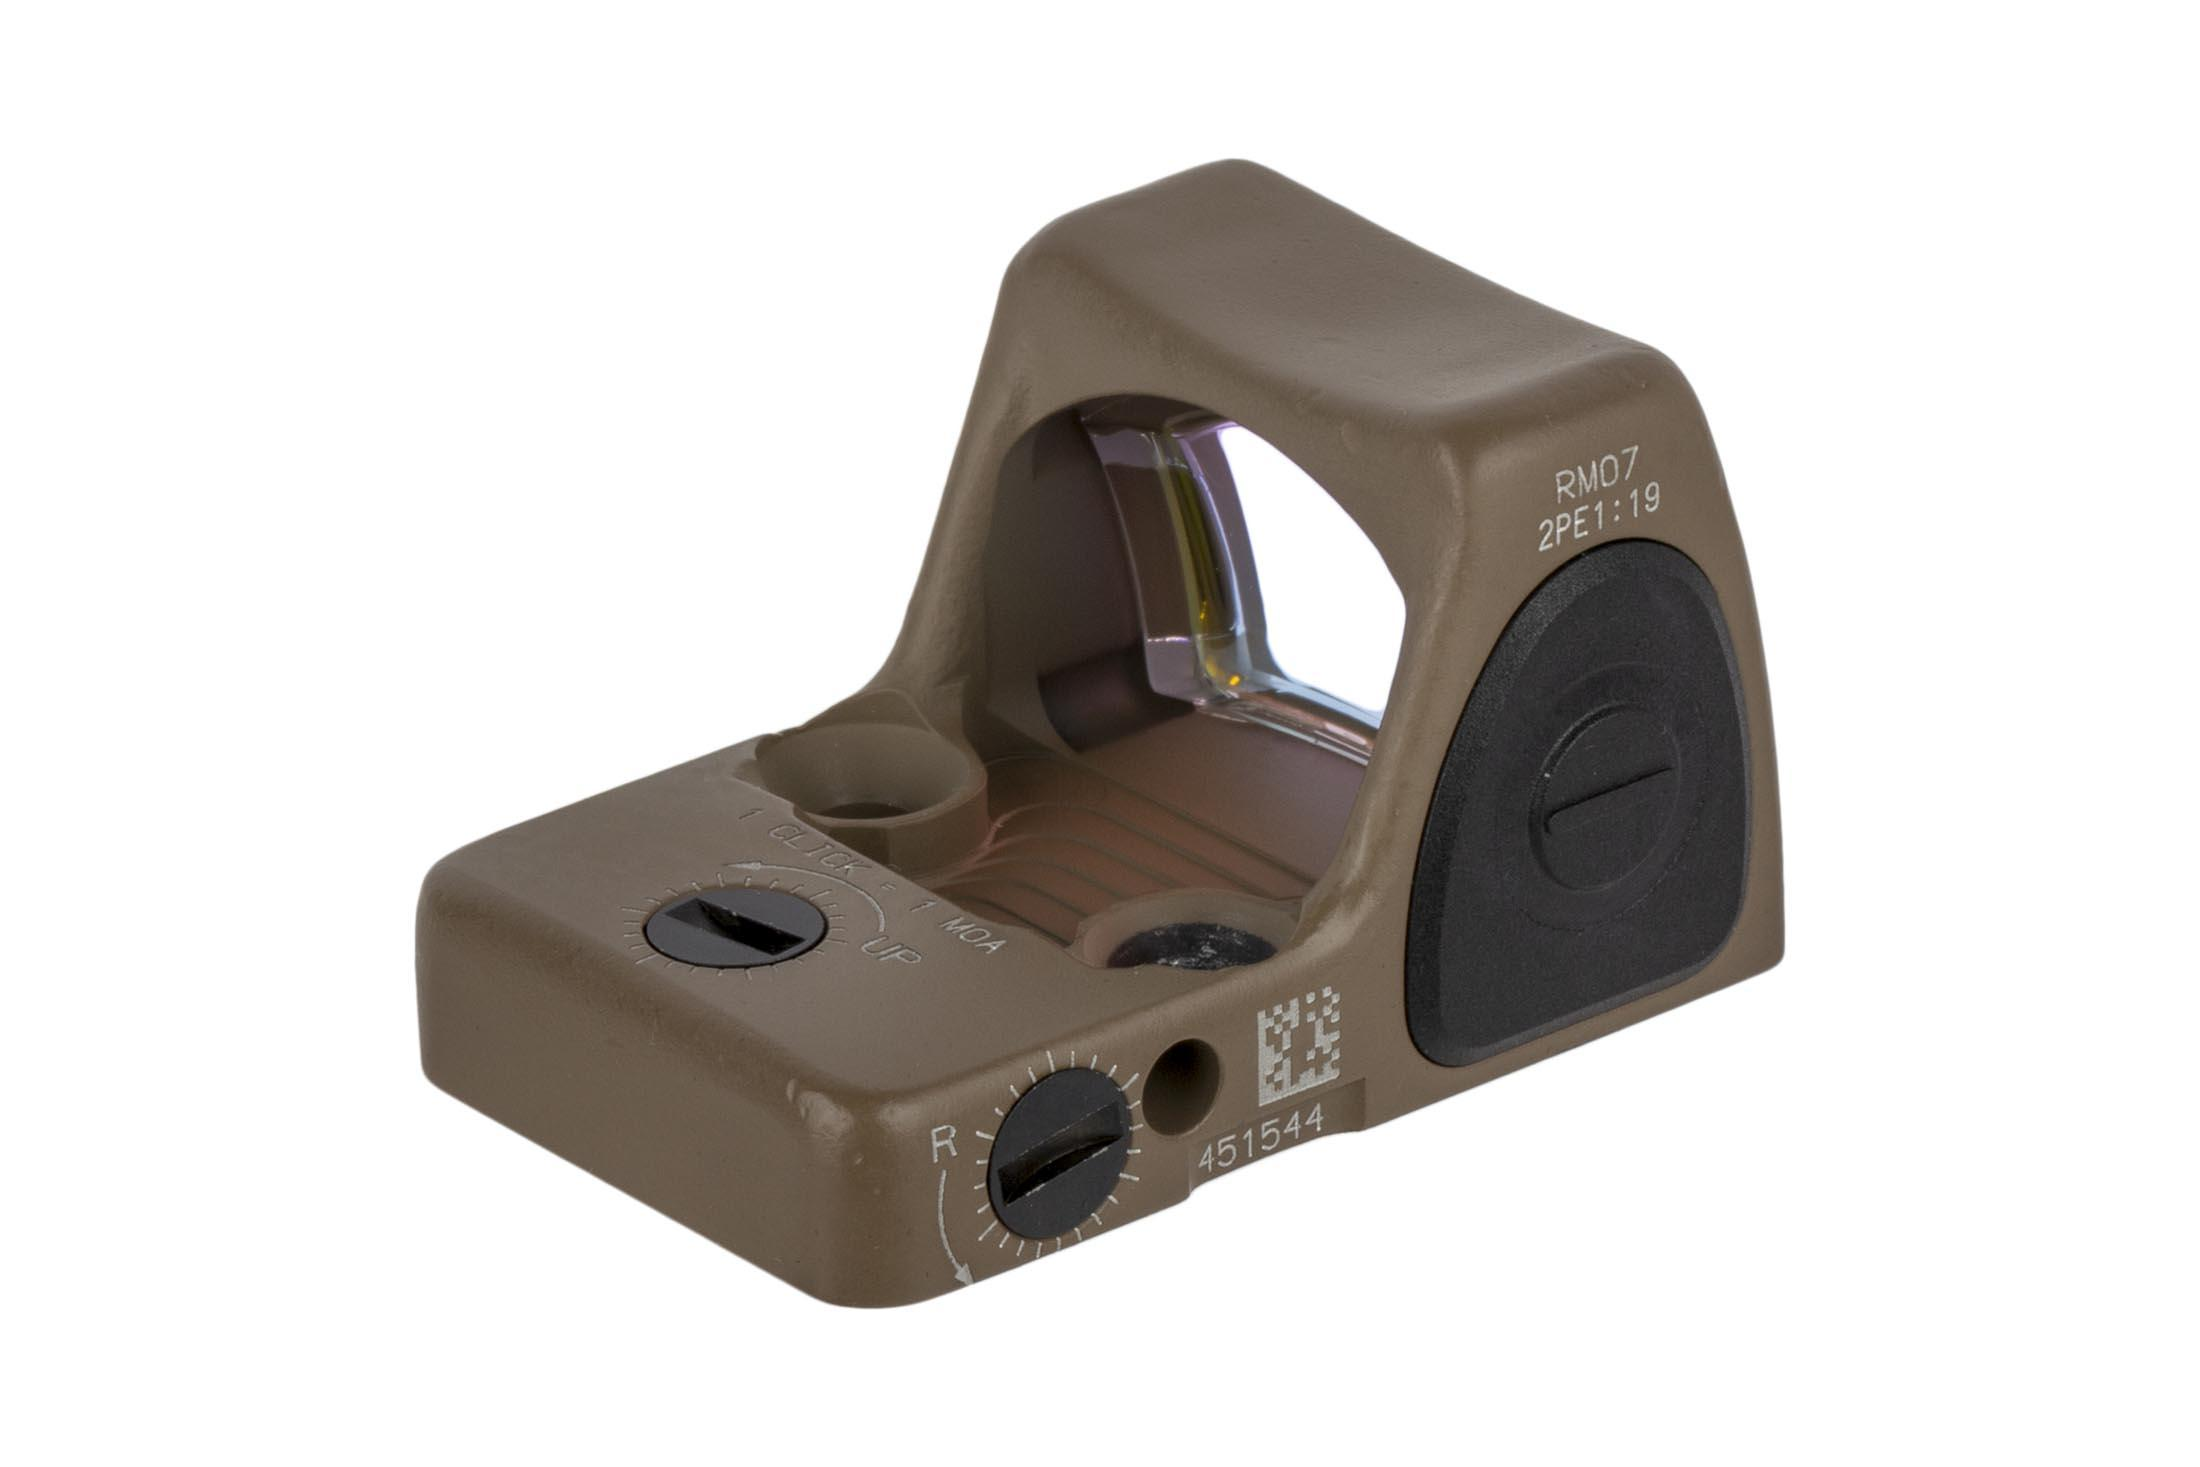 Trijicon FDE 6.5 MOA adjustable RMR Type 2 reflex sight features repeatable 1 MOA click adjustments